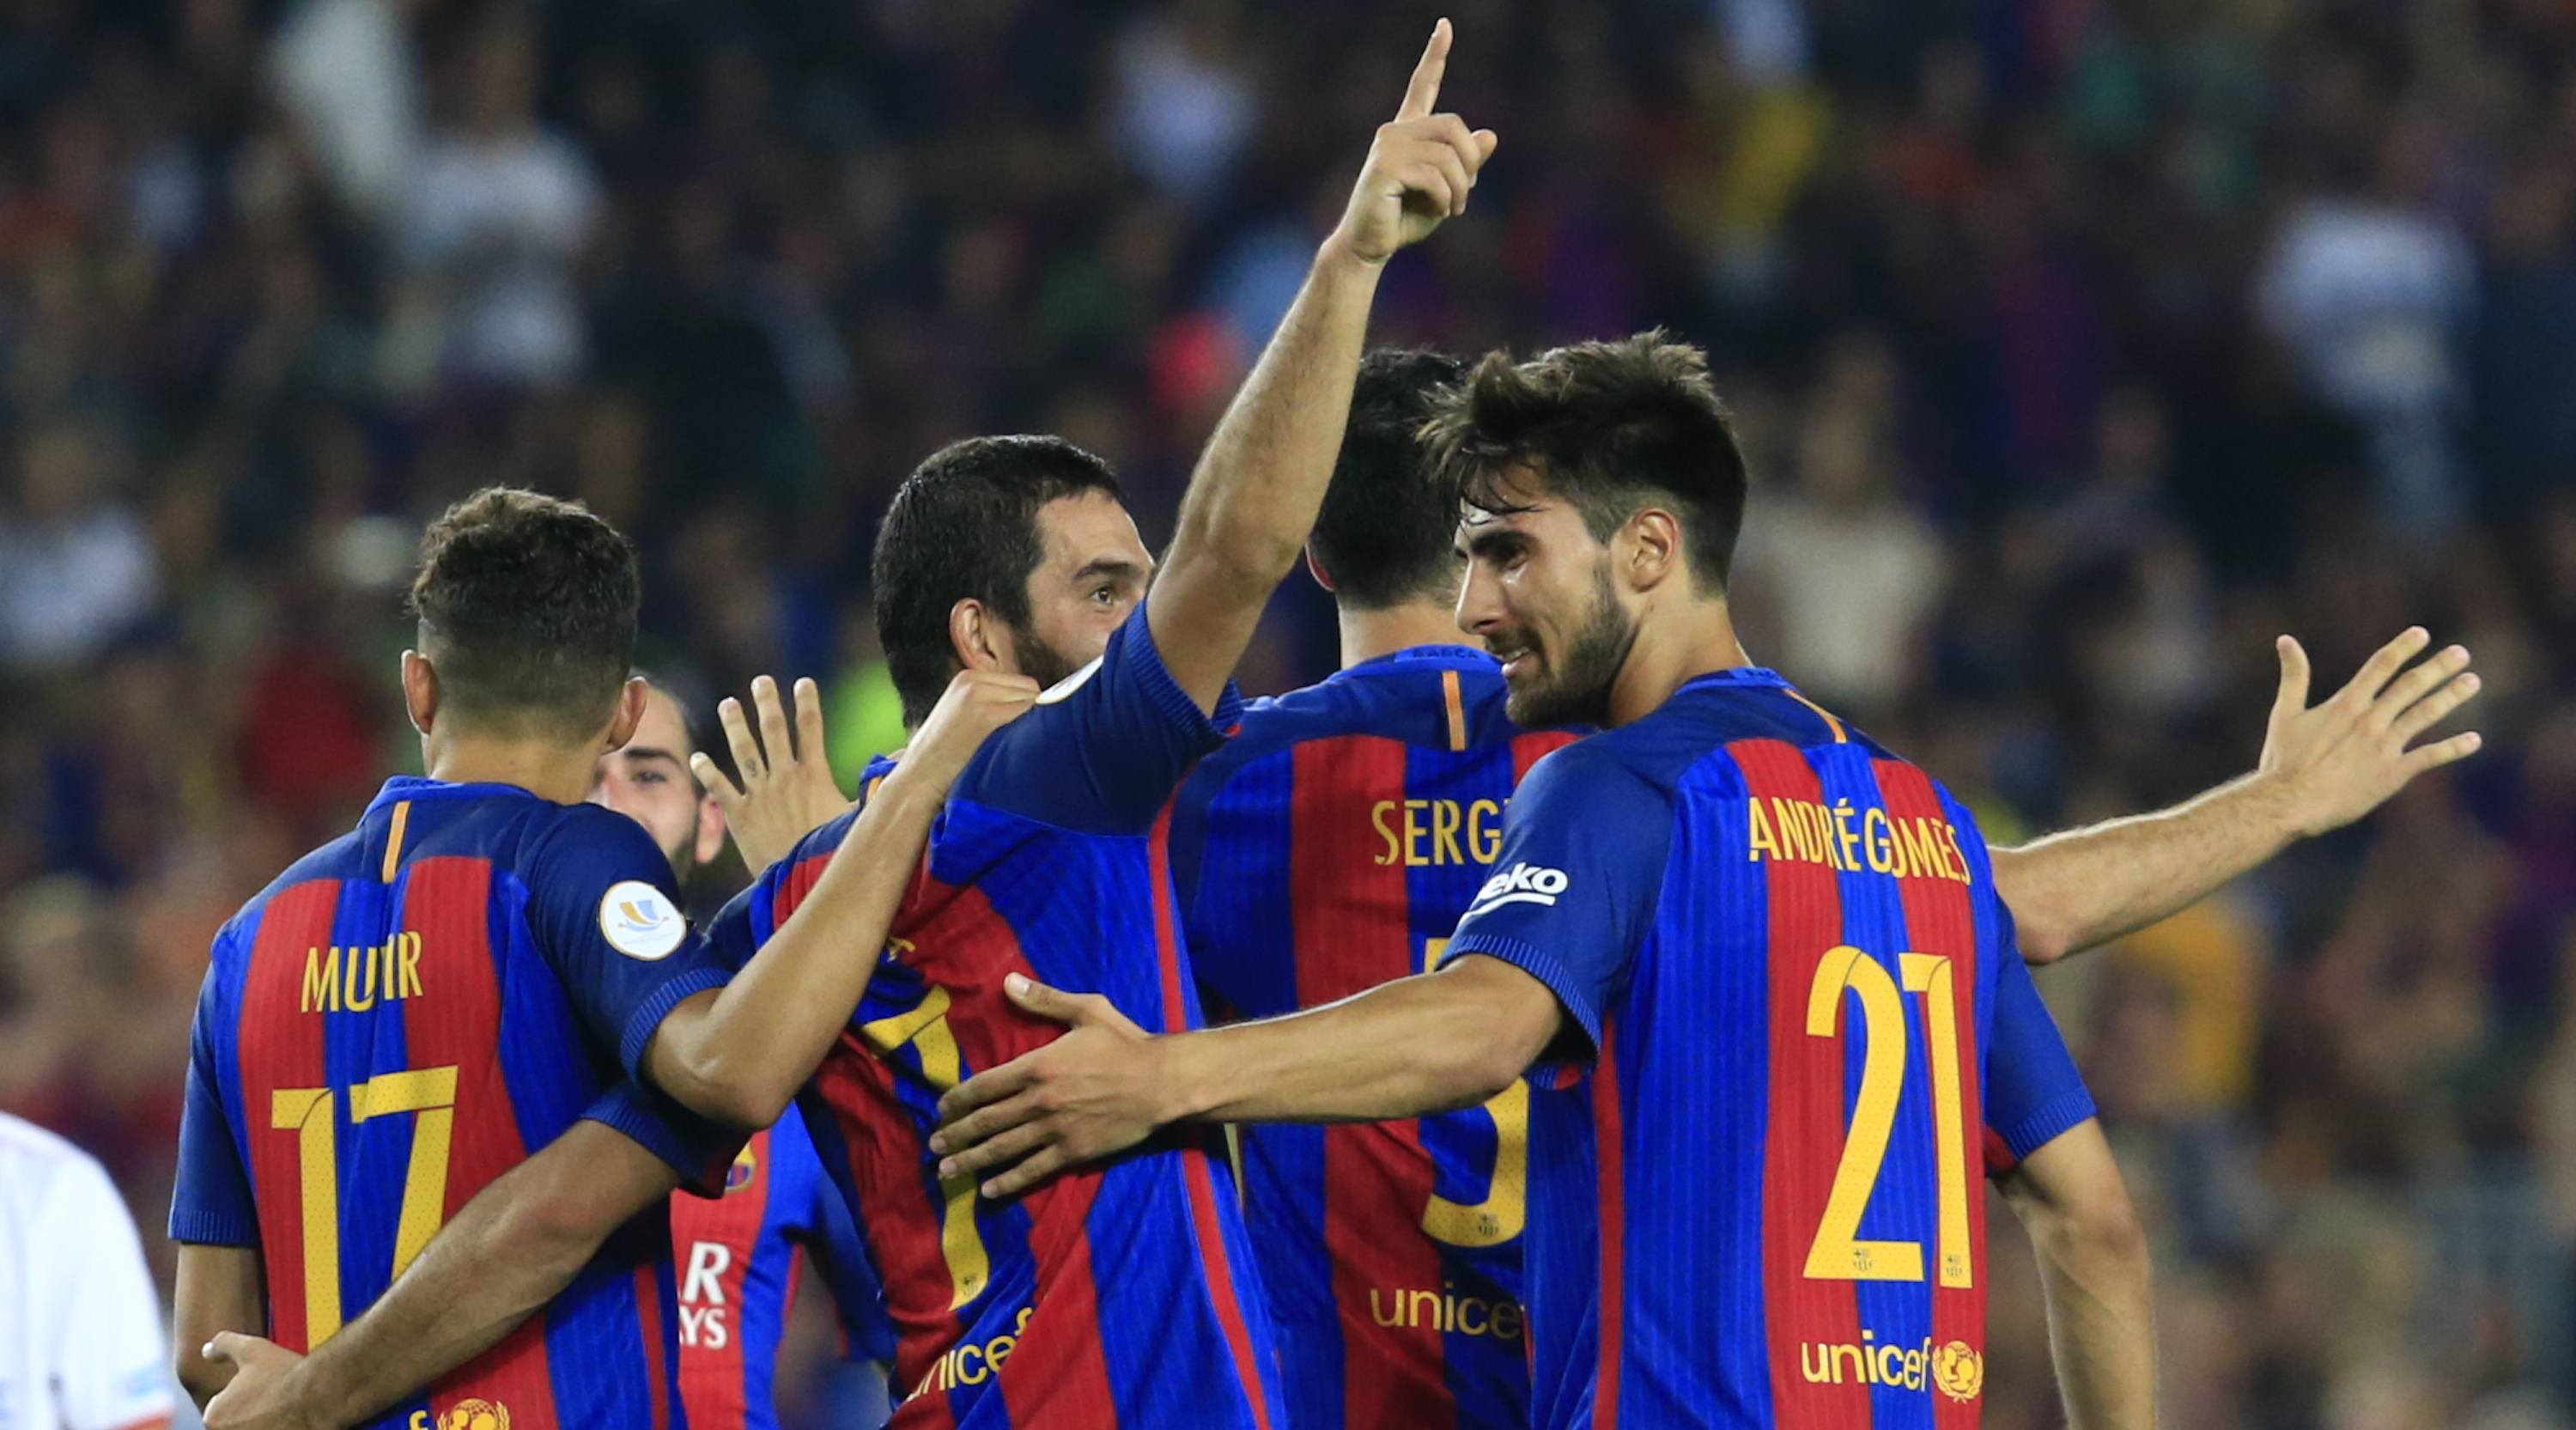 Barcelona's Turkish midfielder Arda Turan celebrates with teammates after scoring during the second leg of the Spanish Supercup football match between FC Barcelona and Sevilla FC at the Camp Nou stadium in Barcelona on August 17, 2016. / AFP / PAU BARRENA (Photo credit should read PAU BARRENA/AFP/Getty Images)